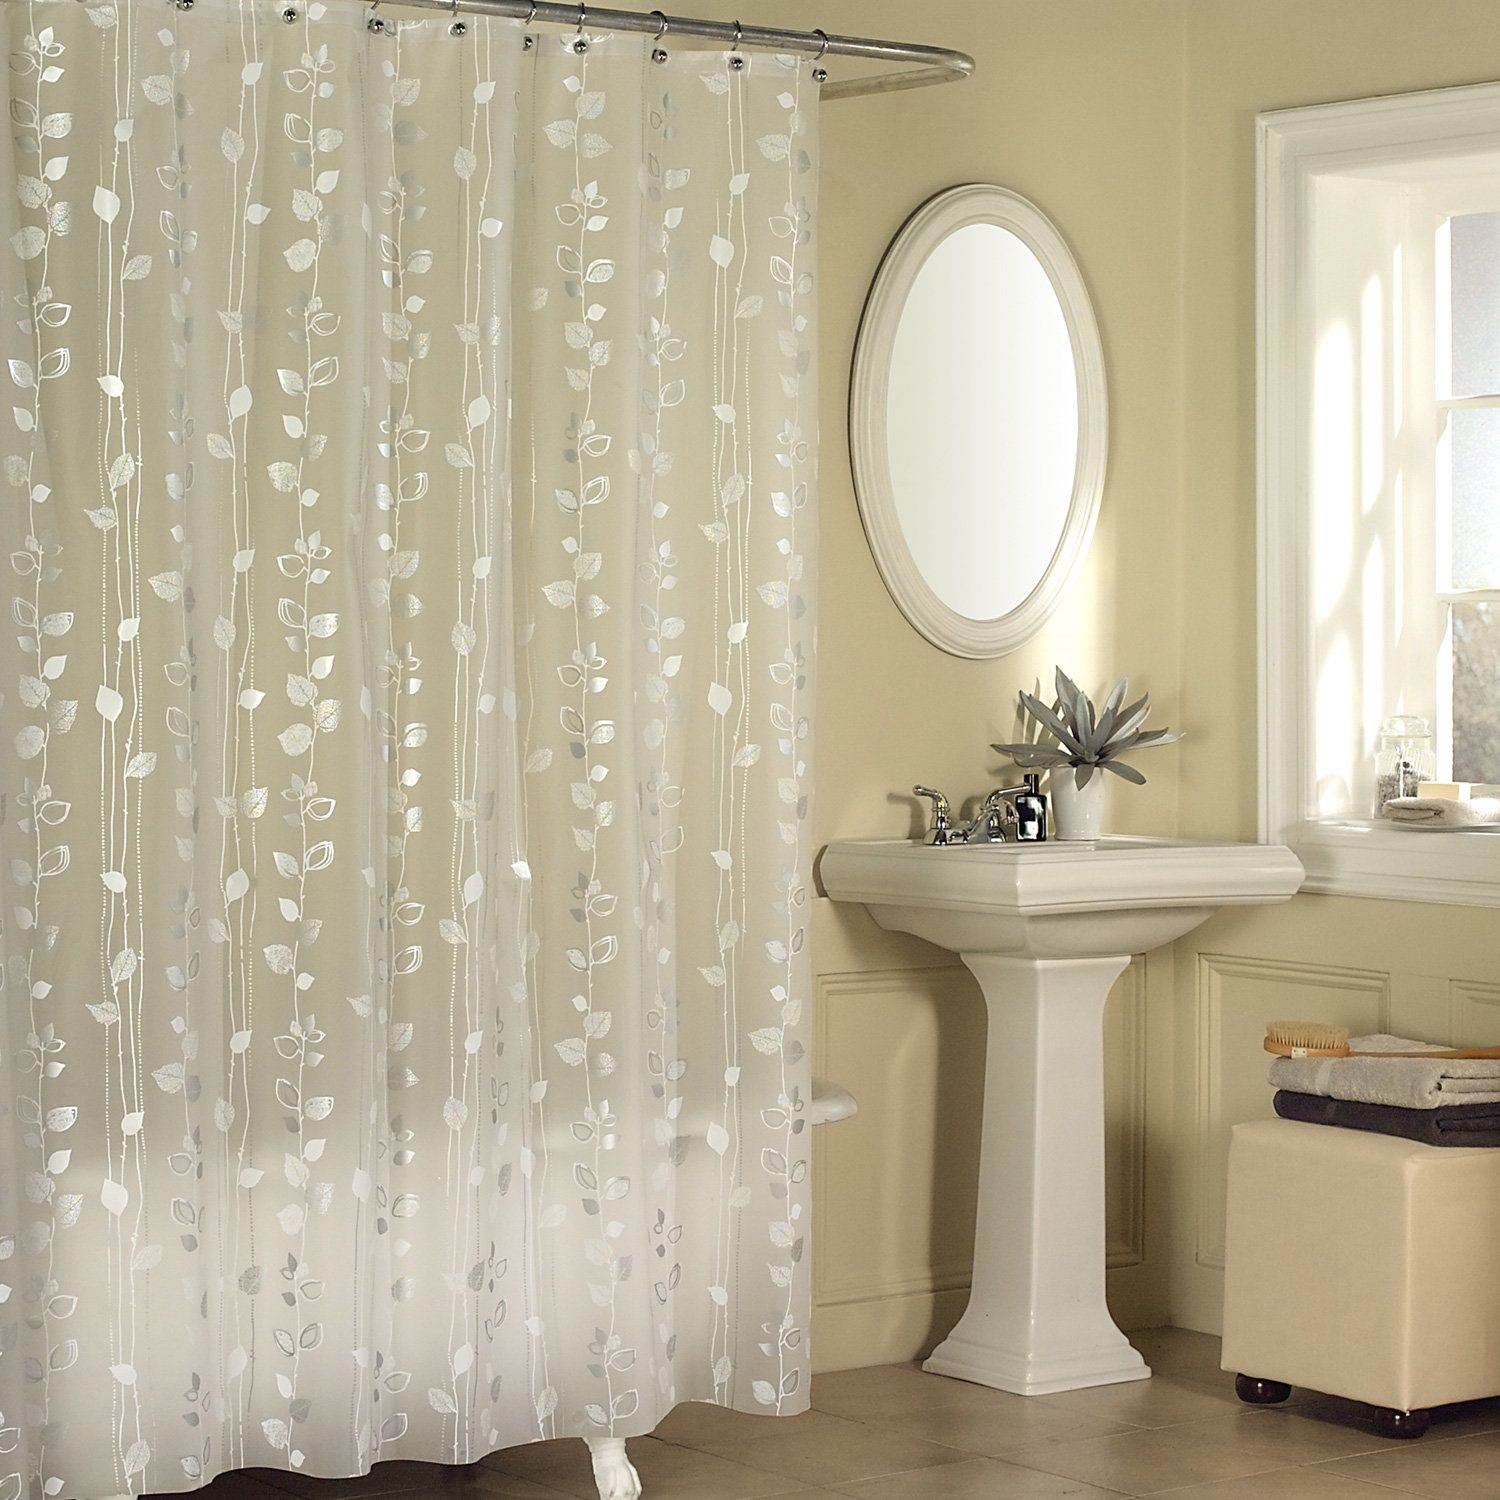 12 Choices How To Clean A Plastic Shower Curtain Should Be Vinyl Shower Curtains Curtains Shower